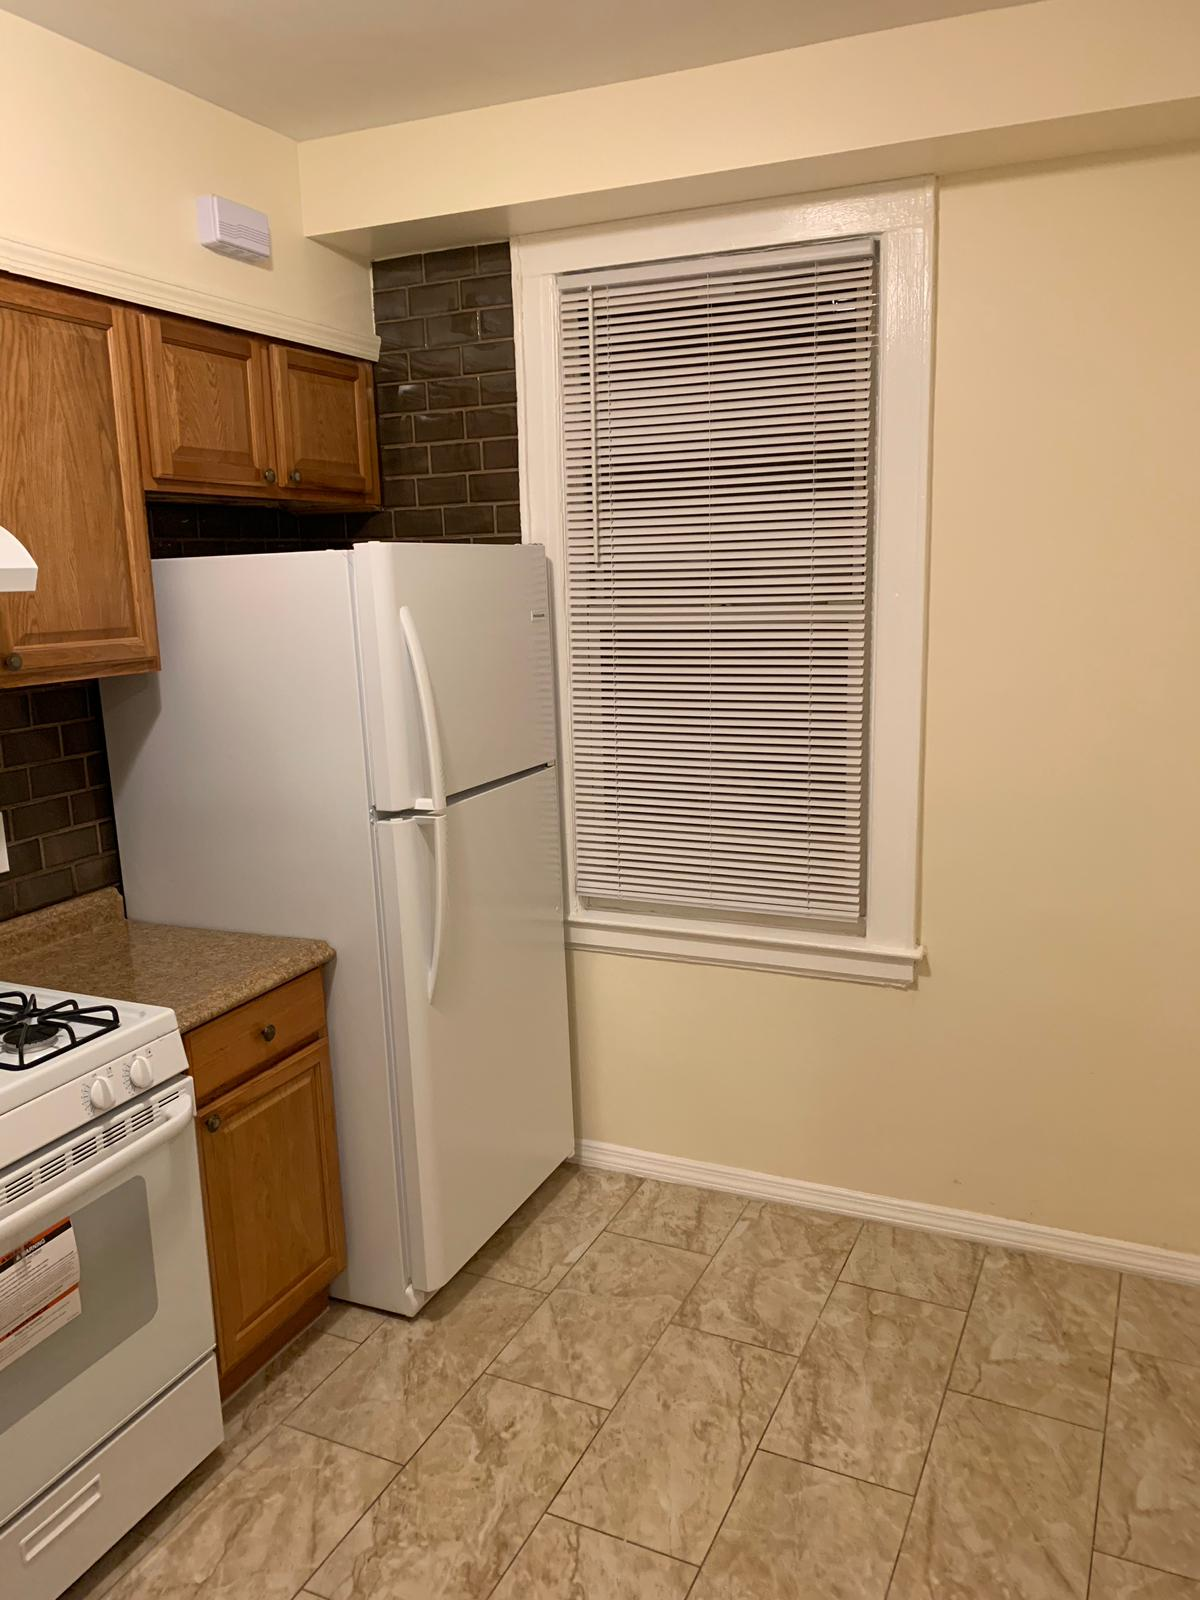 Beautiful 2 Bedroom Apartment For Rent In Glendale Features Living Room/ Dining Room Combo, Eat in Kitchen W/ Ceramic Tiles & New Appliances. Heat And Water Is Included. Hardwood Flooring Throughout.. Close To All Shops And Transportation.